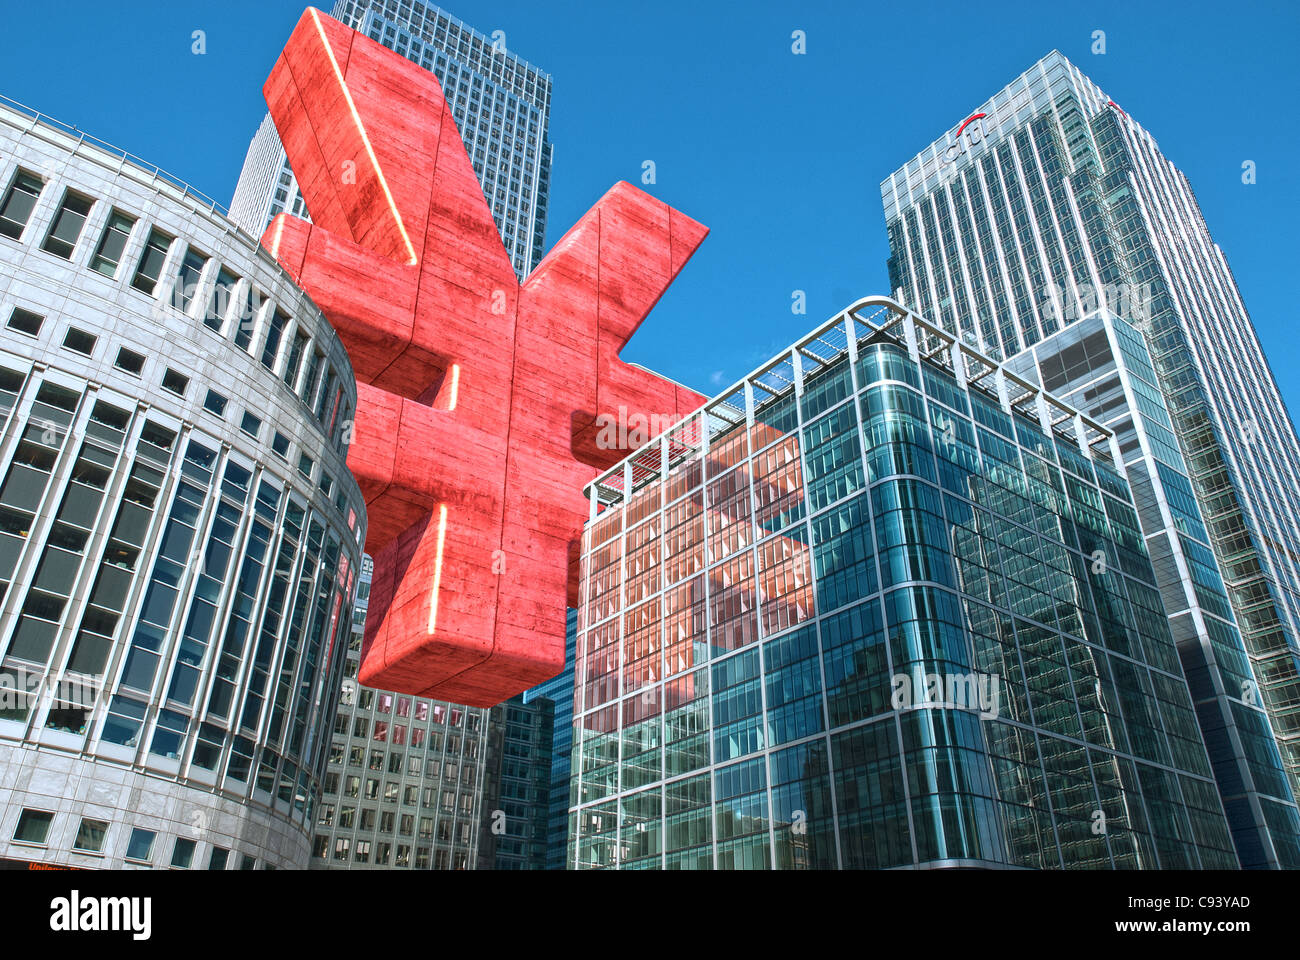 Digitally altered Photograph by hitandrun media. A Giant Japanese Yen or Chinese Yuan symbol, floating between buildings - Stock Image